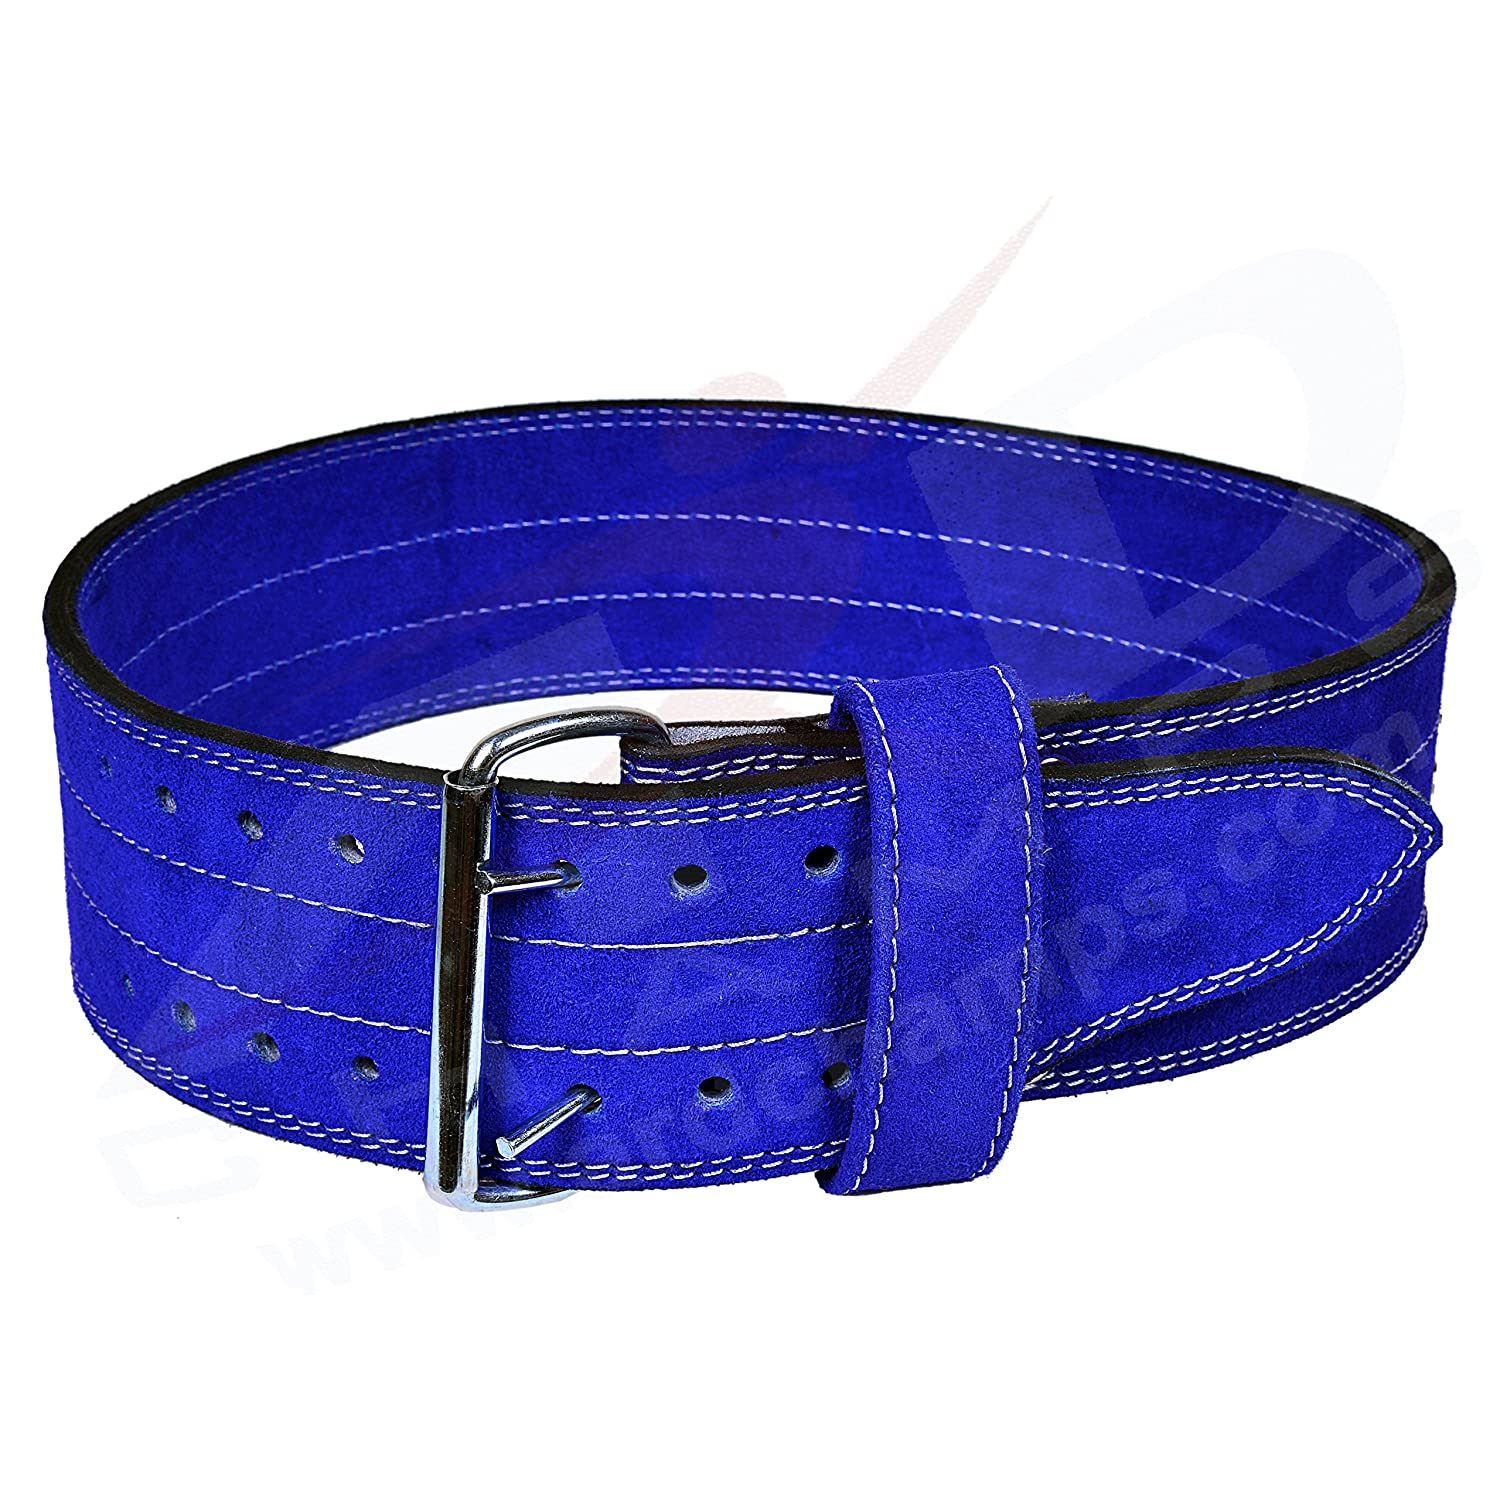 4FIT Genuine Leather 4 Power Heavy Duty Weight Lifting Body building Belt with Steel Buckle Blue